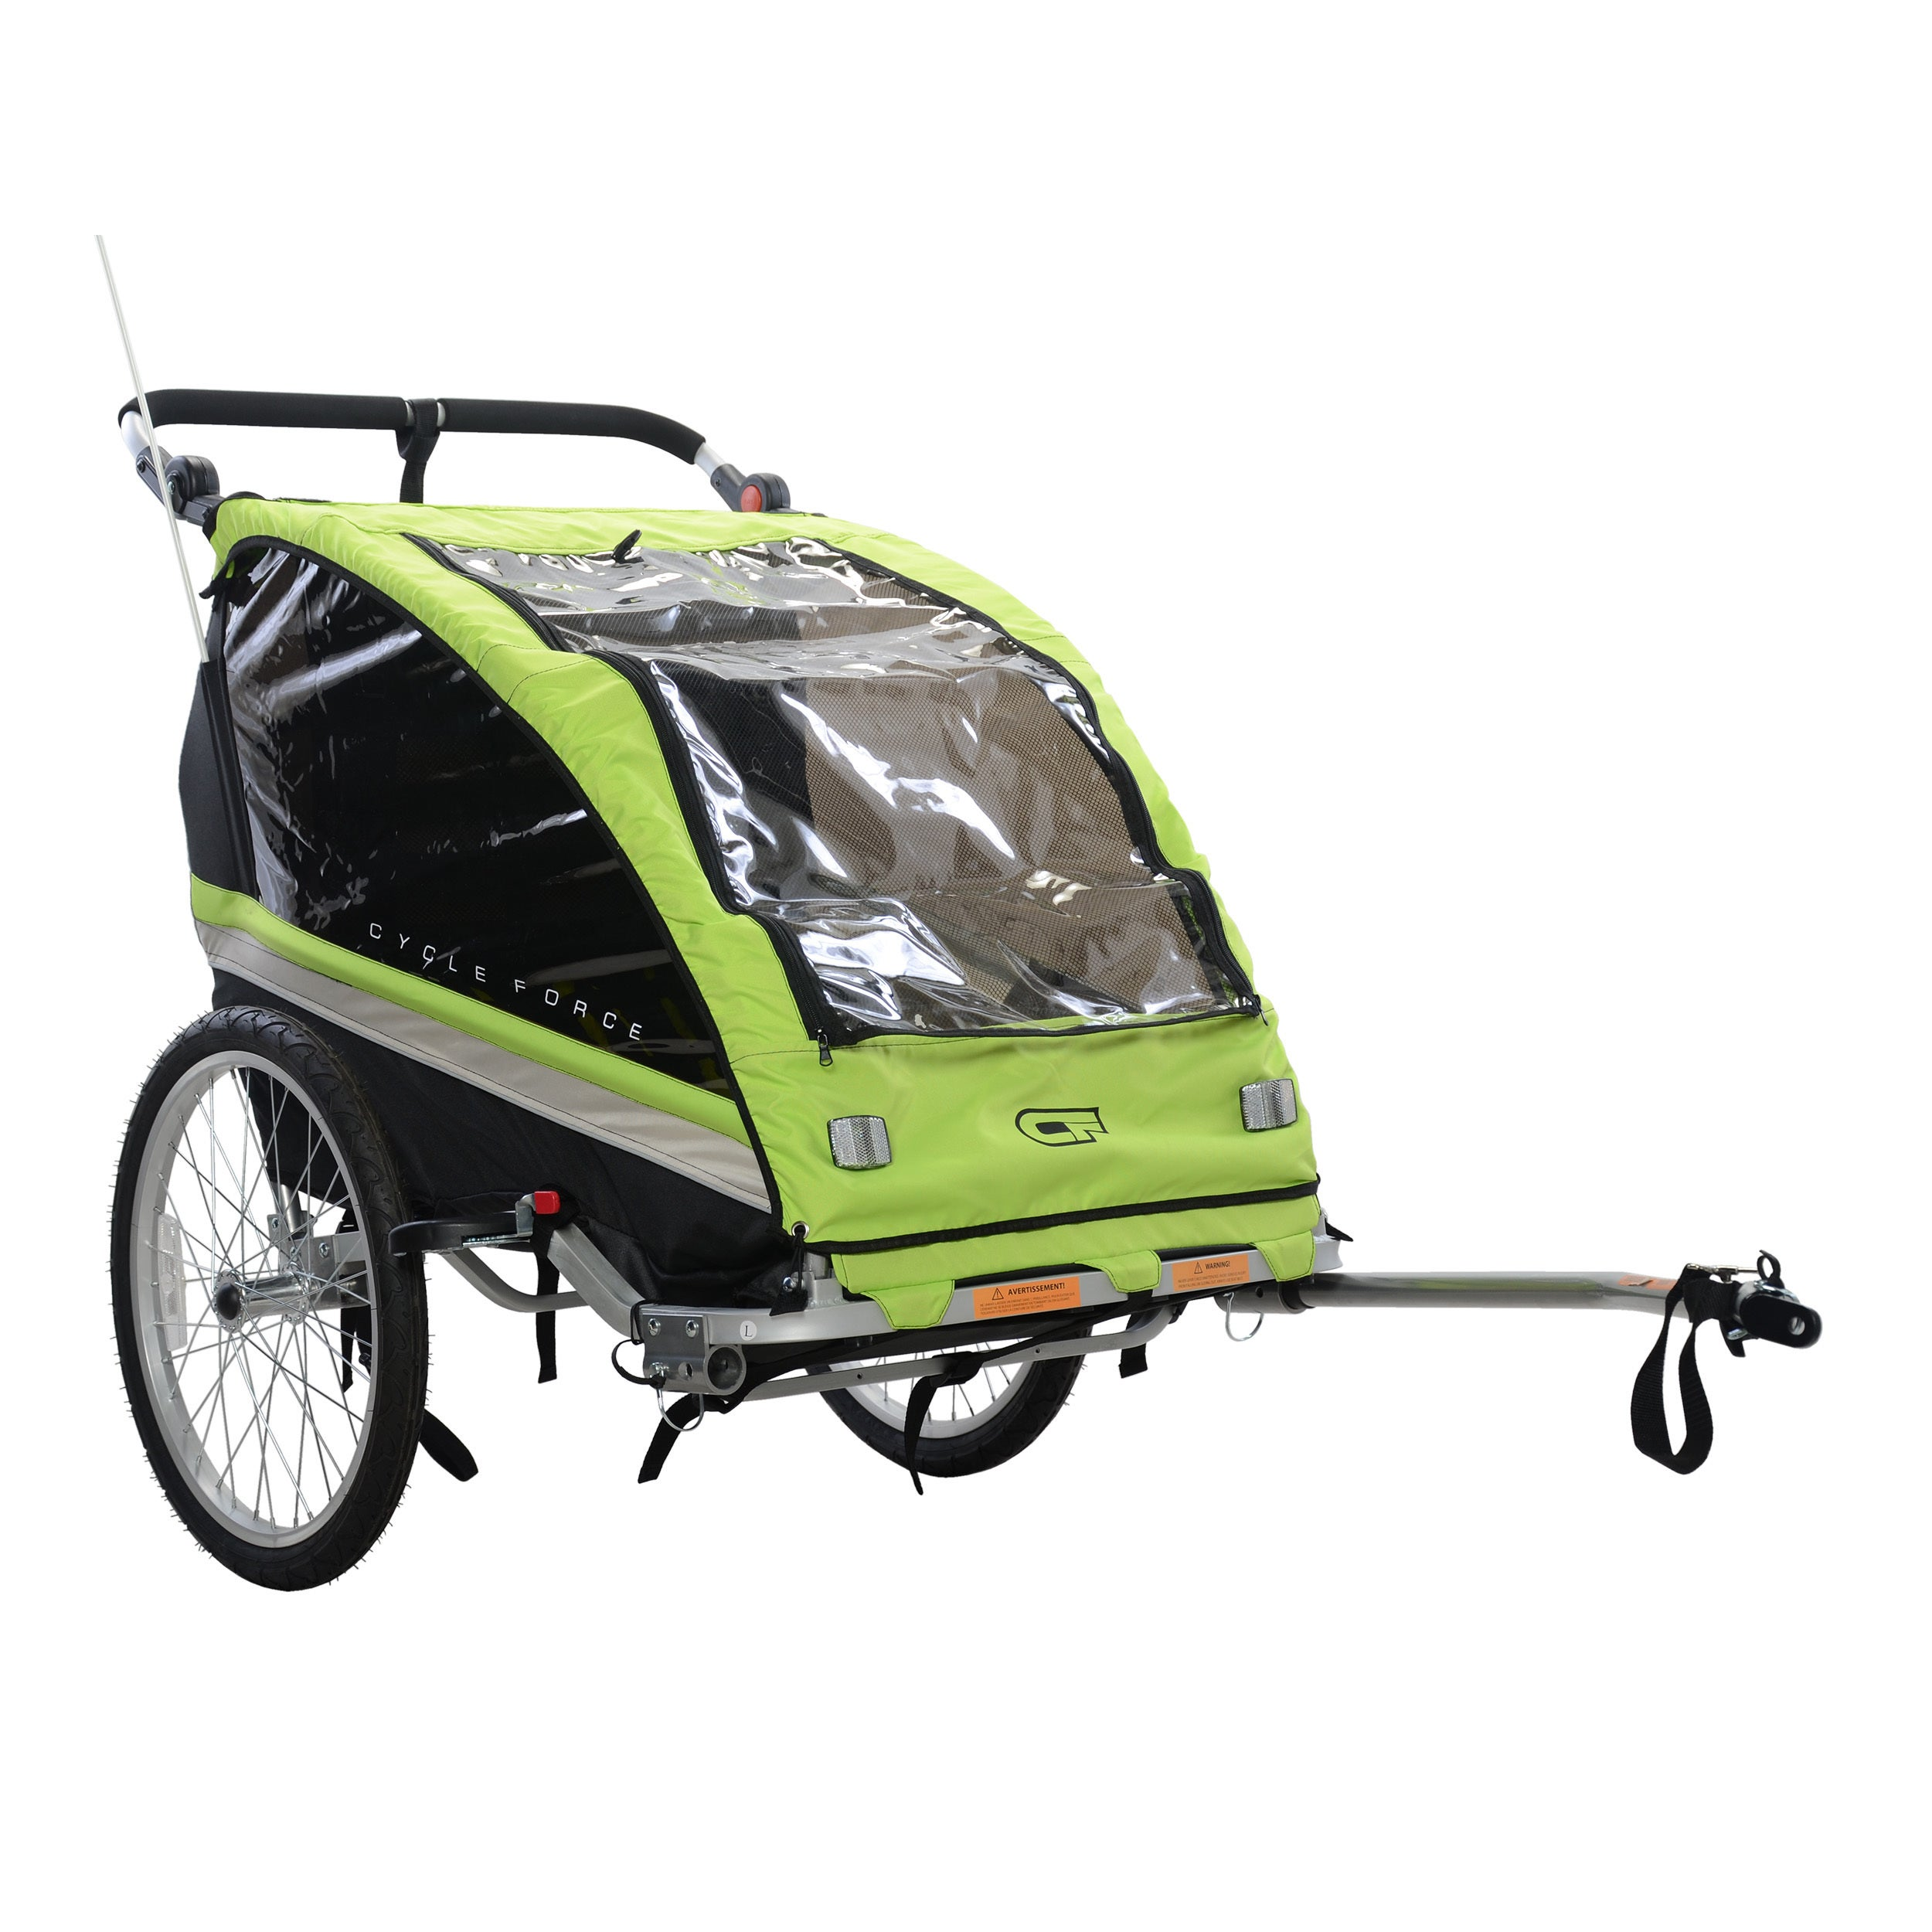 Cycle Force C23 Double Child 3-In-1 Bicycle Trailer, Jogg...